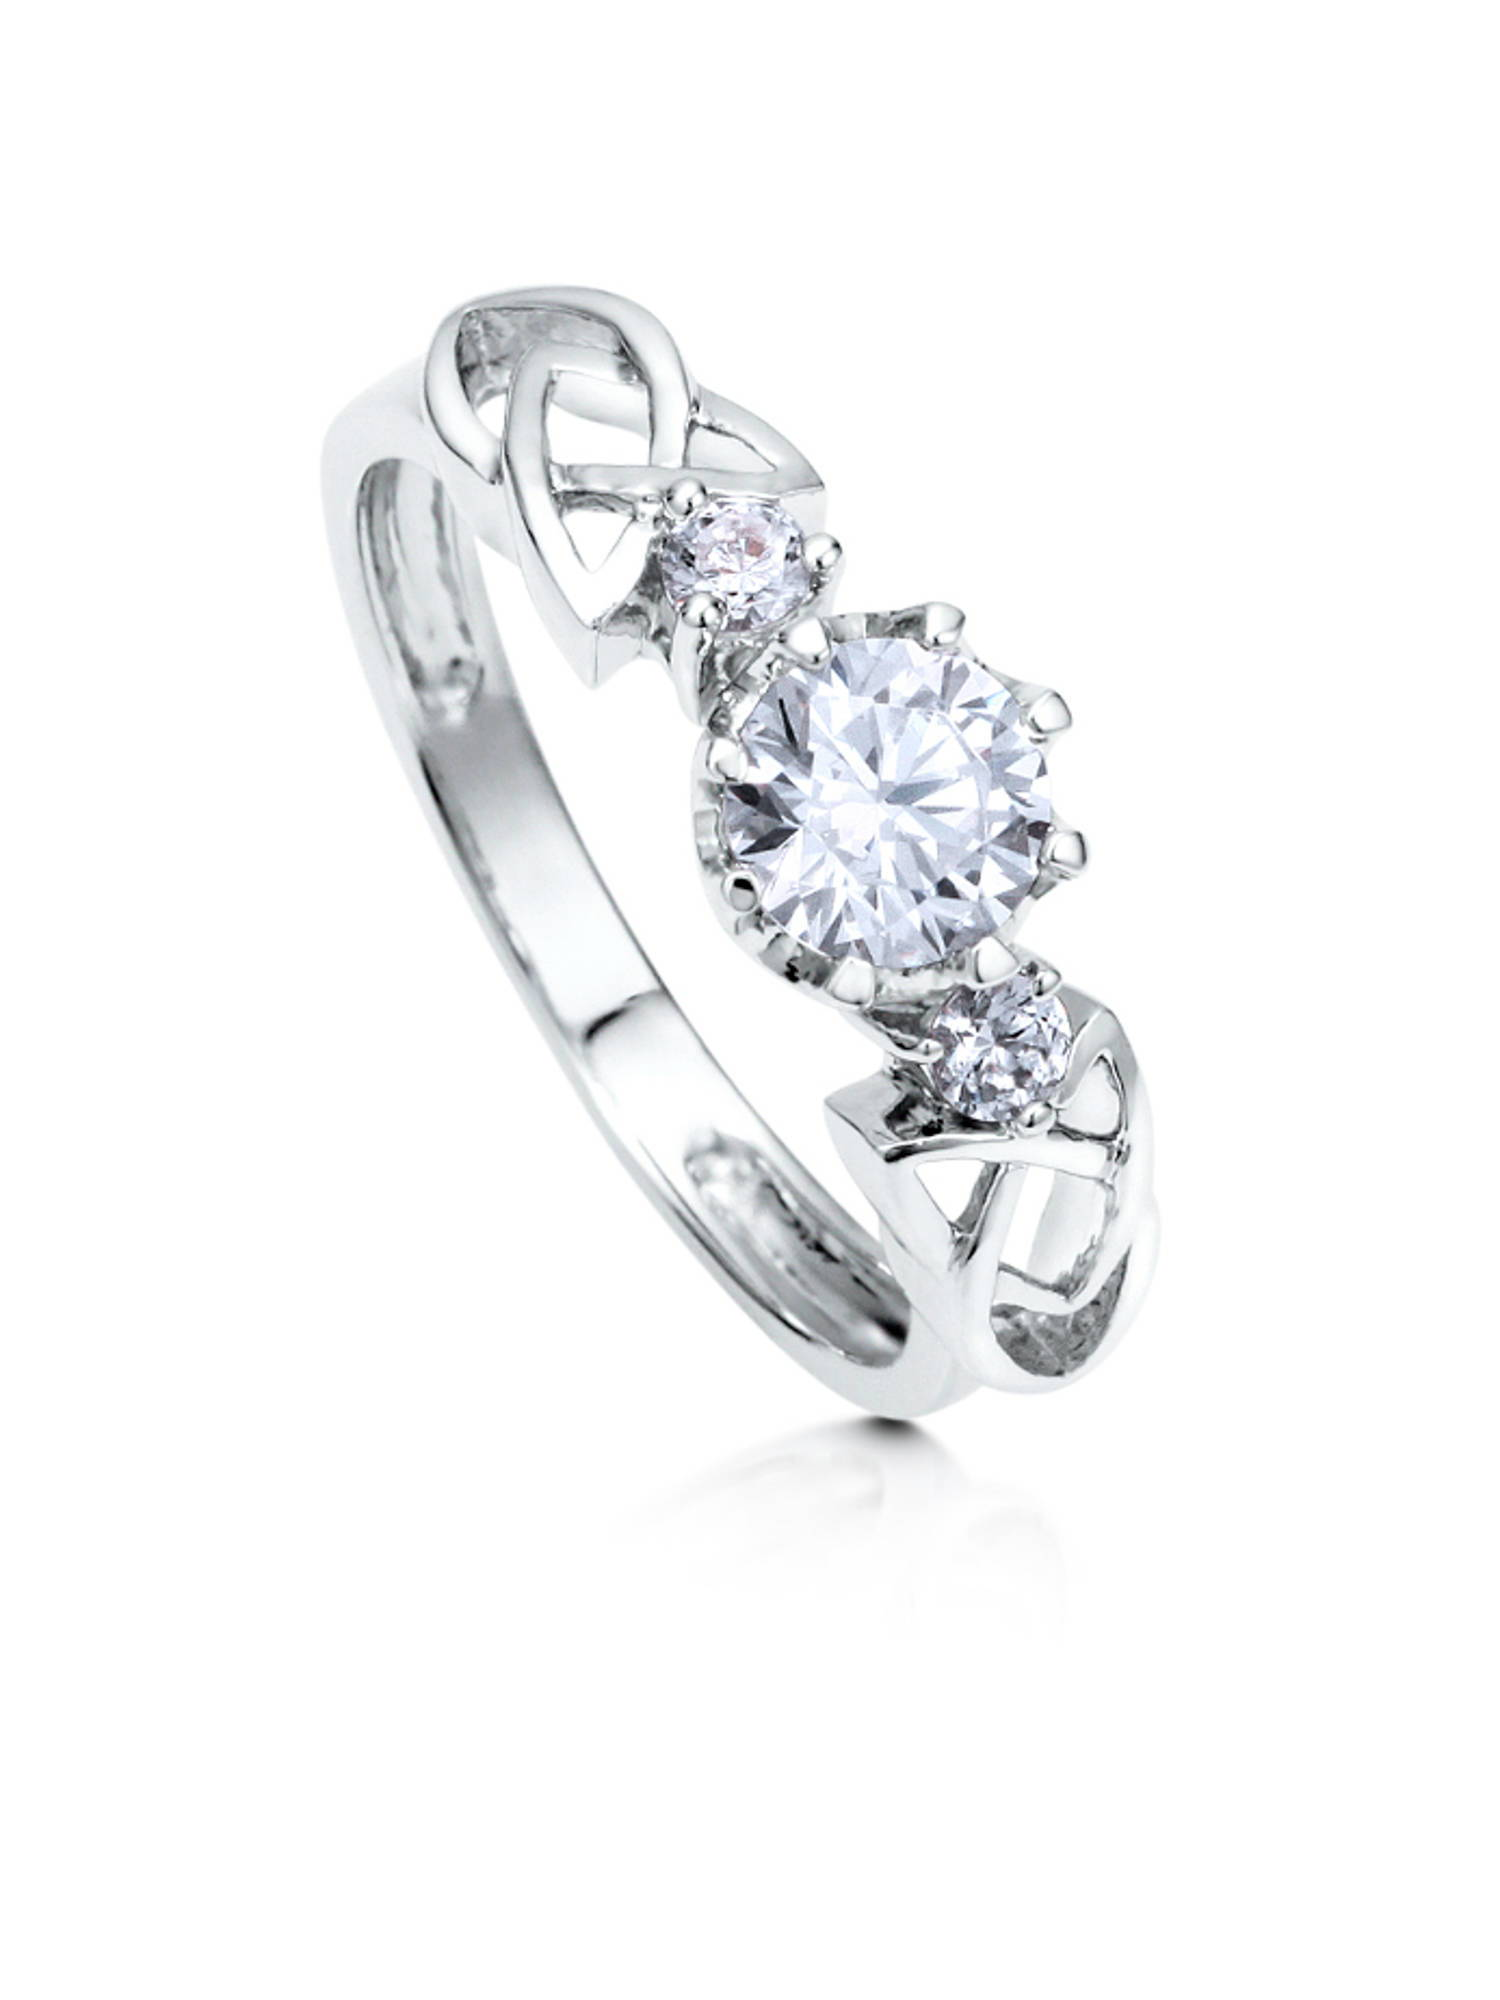 Rhodium Plated Sterling Silver Cubic Zirconia CZ 3-Stone Celtic Knot Promise Ring Size 4.5